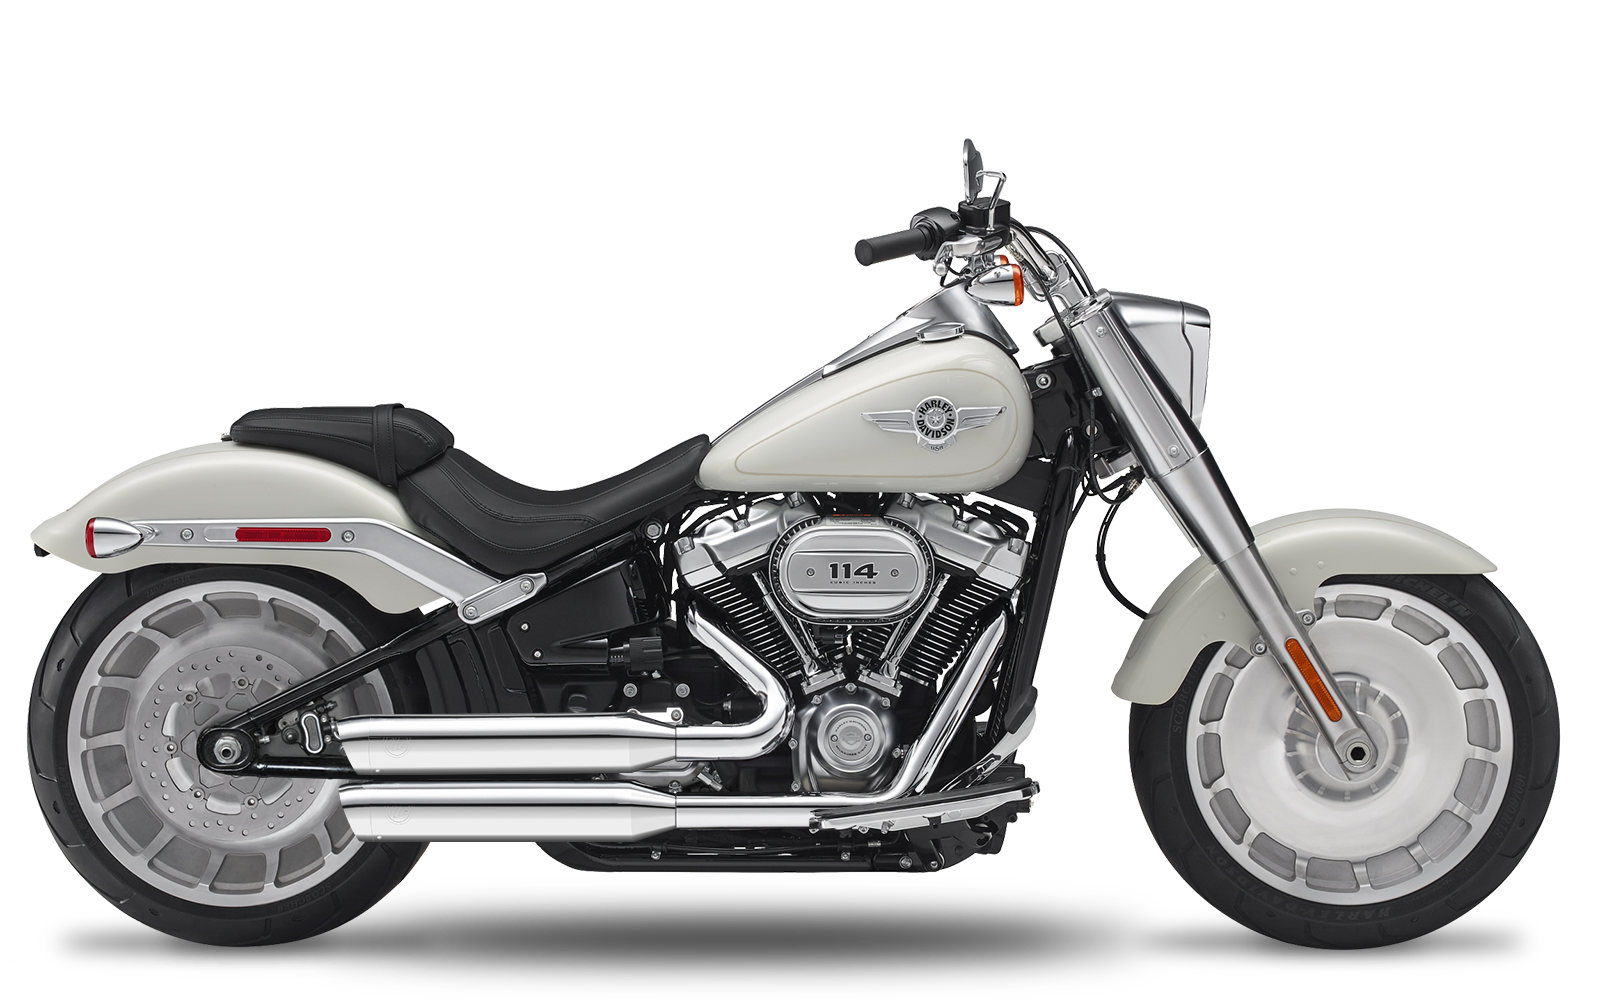 Softail - Fat Boy 114 / S - ME114 - 2018-2020 - Complete systems